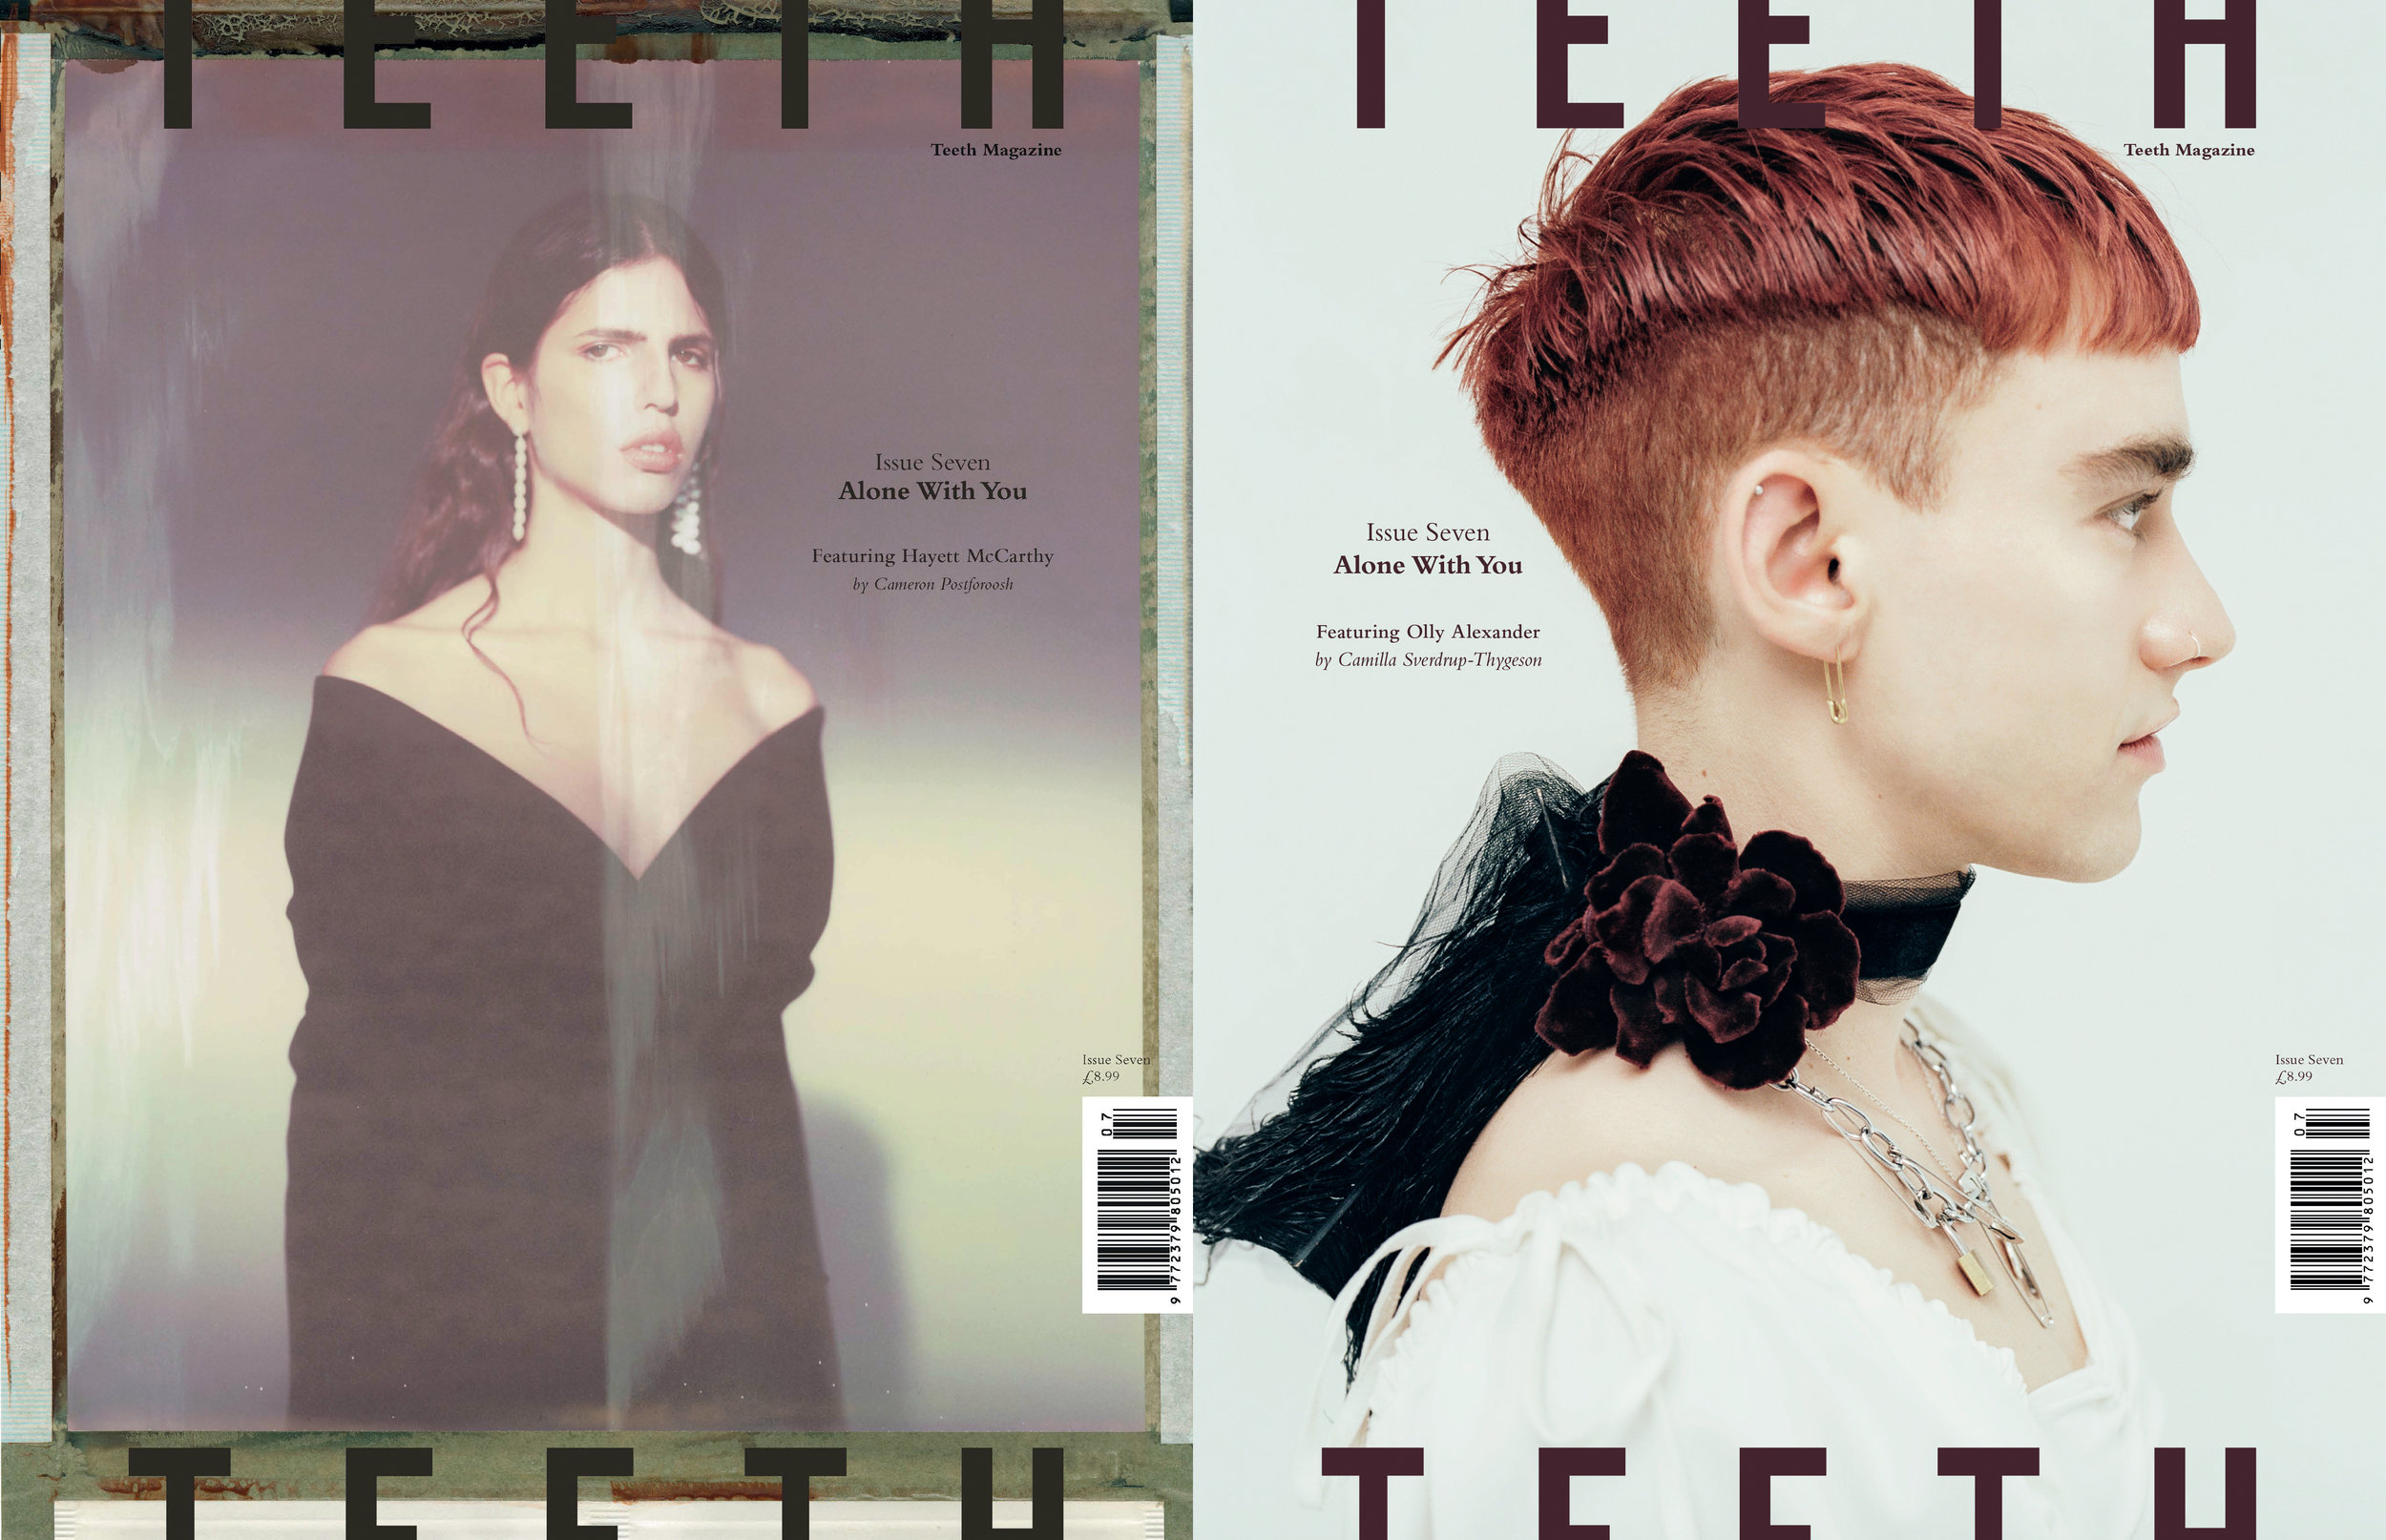 Teeth-Magazine-Issue-07-Alone-With-You-1.jpg